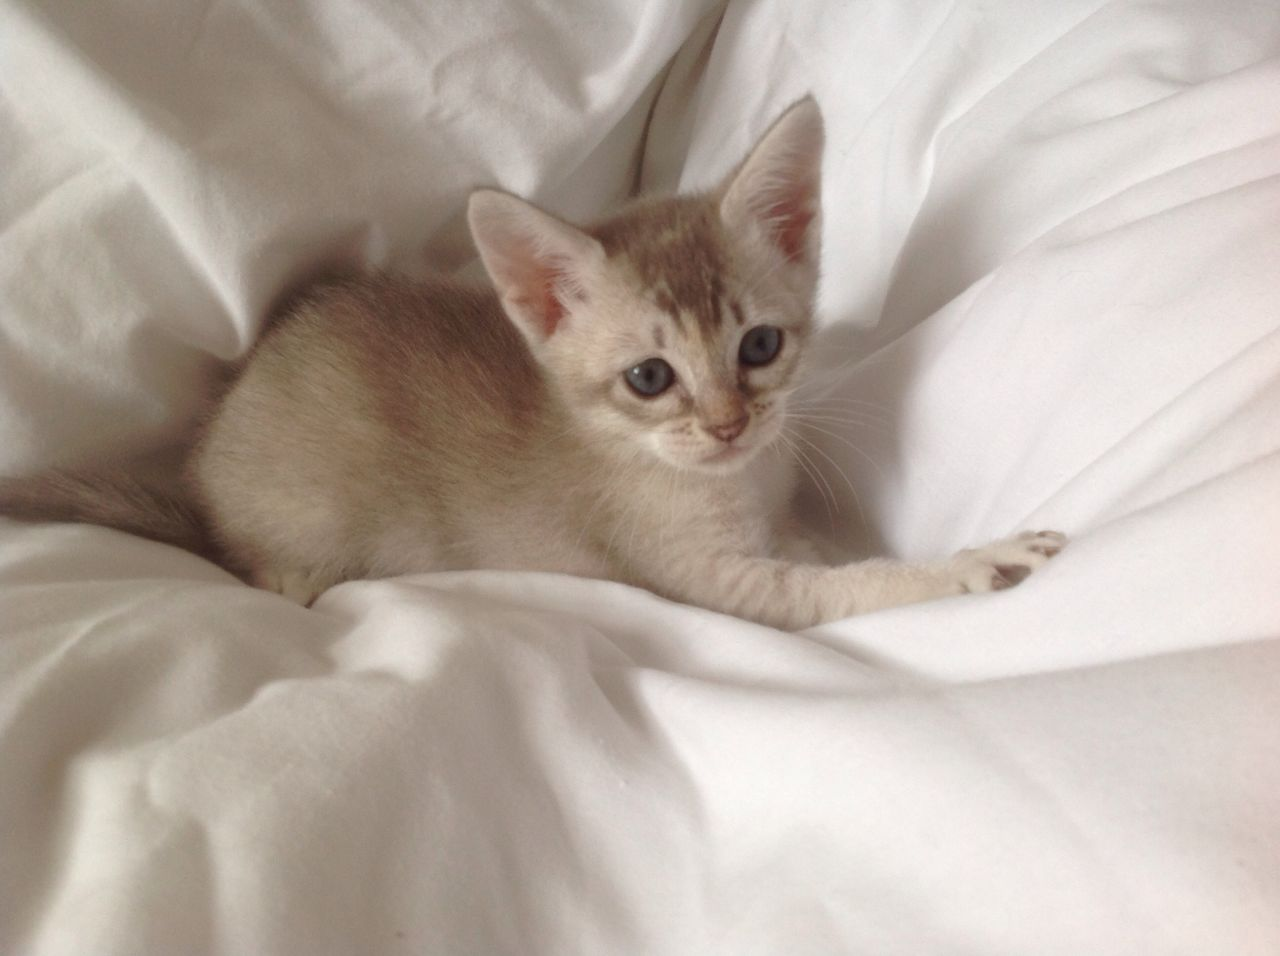 Asian Kitten: Asian Beautiful Asia N Kittens Burmese Phenotype Cockermouth Breed